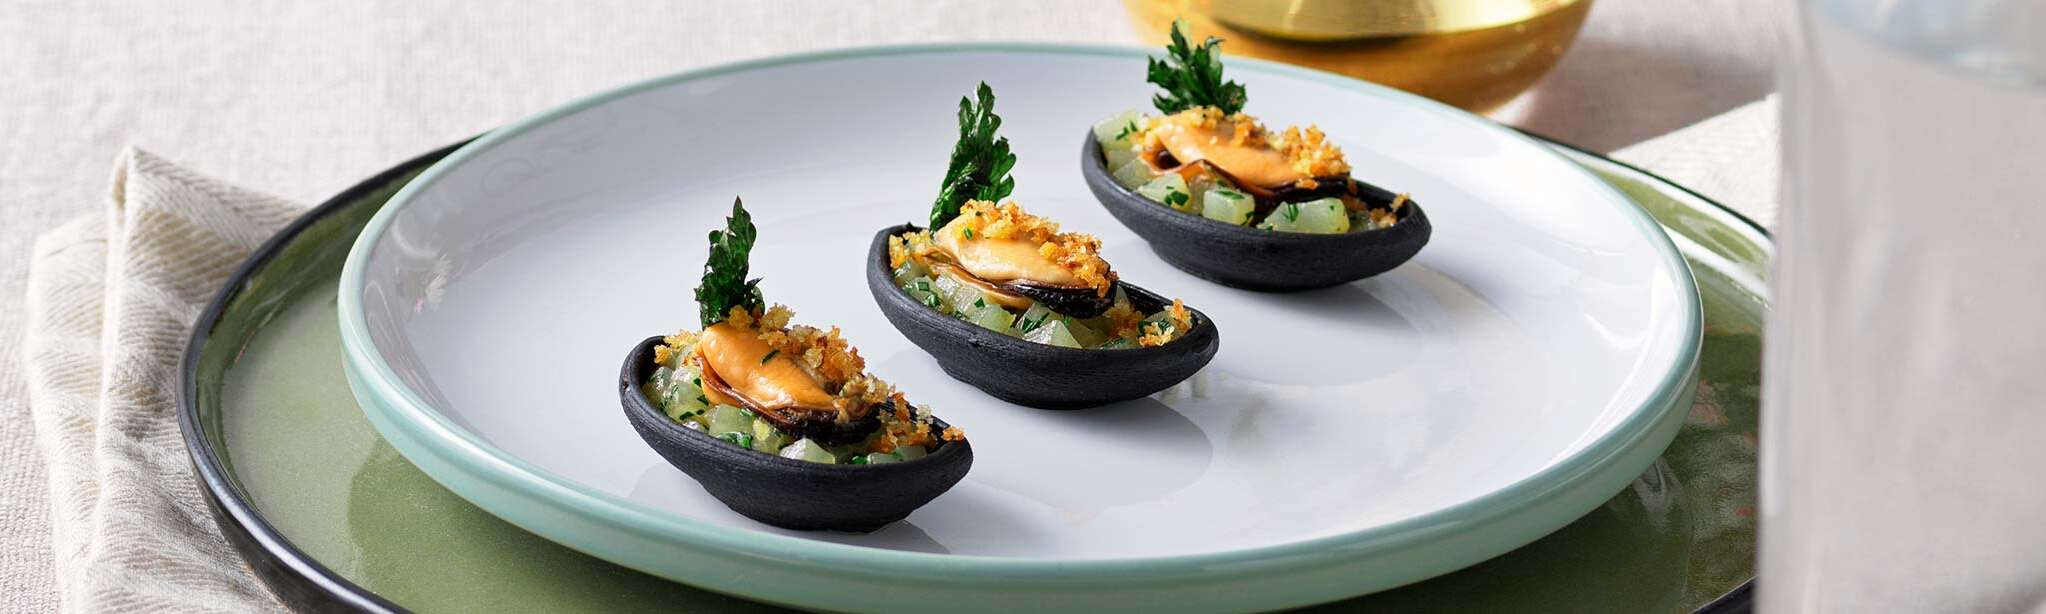 Potatoes and mussels